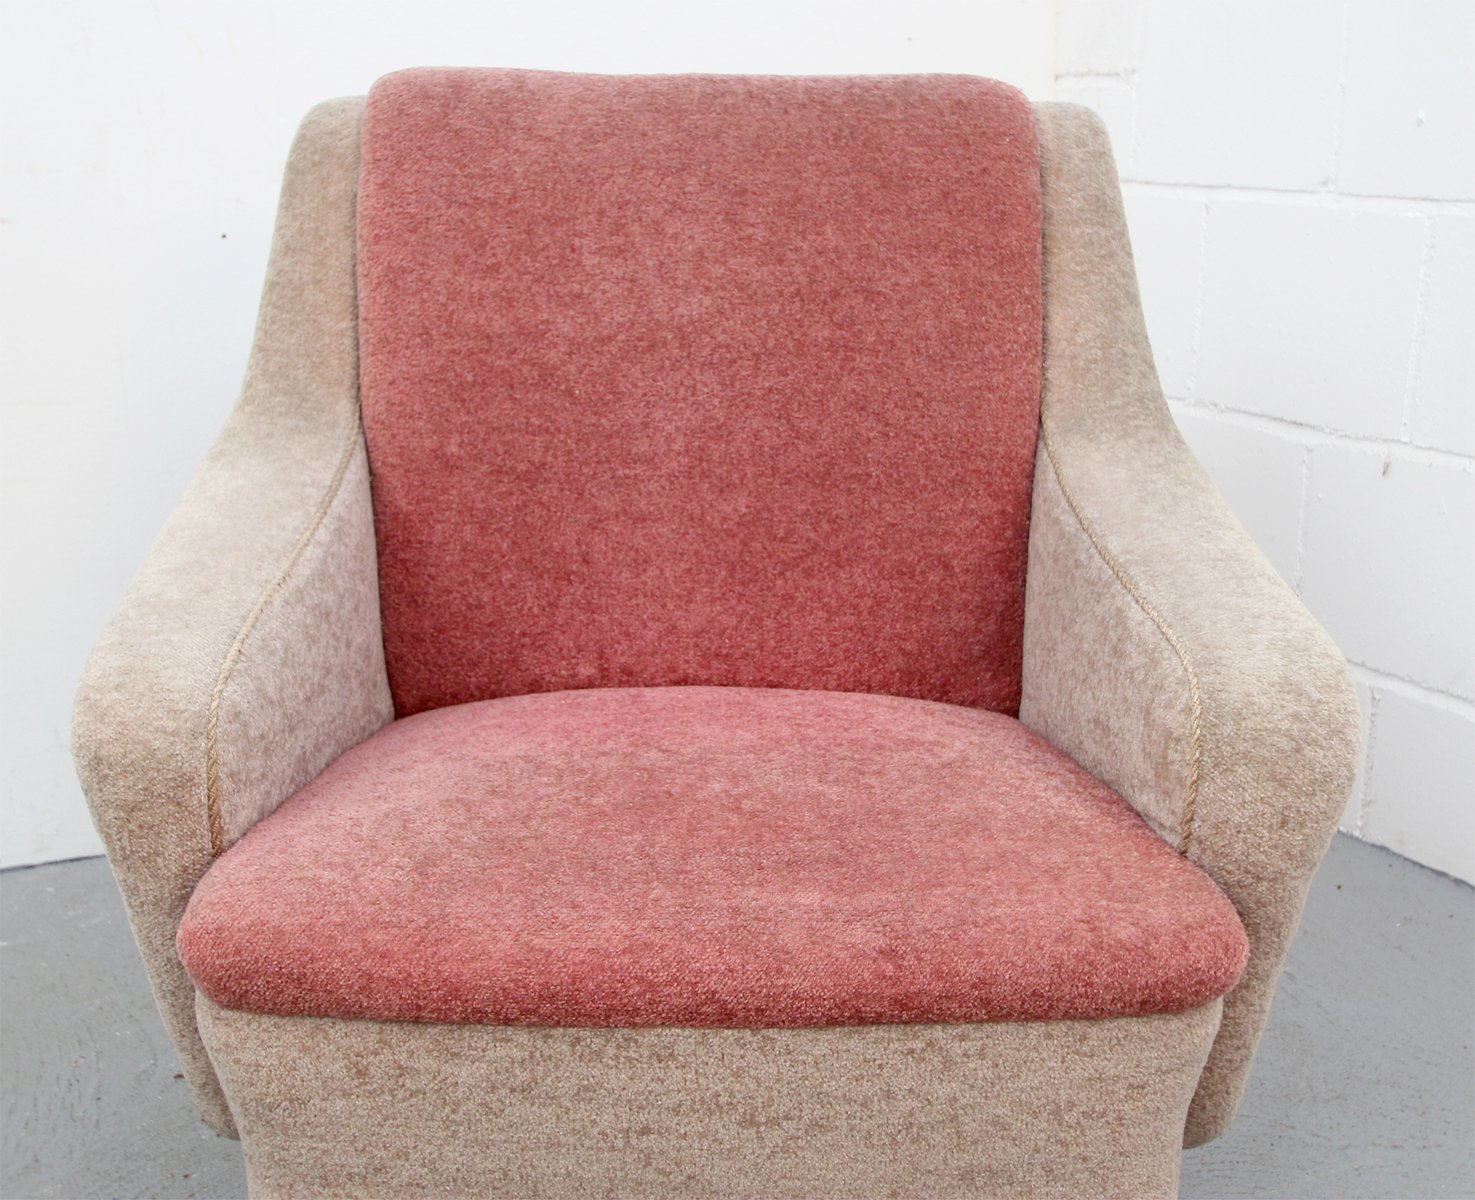 Two-Tone German Pink Armchair, 1950s for sale at Pamono